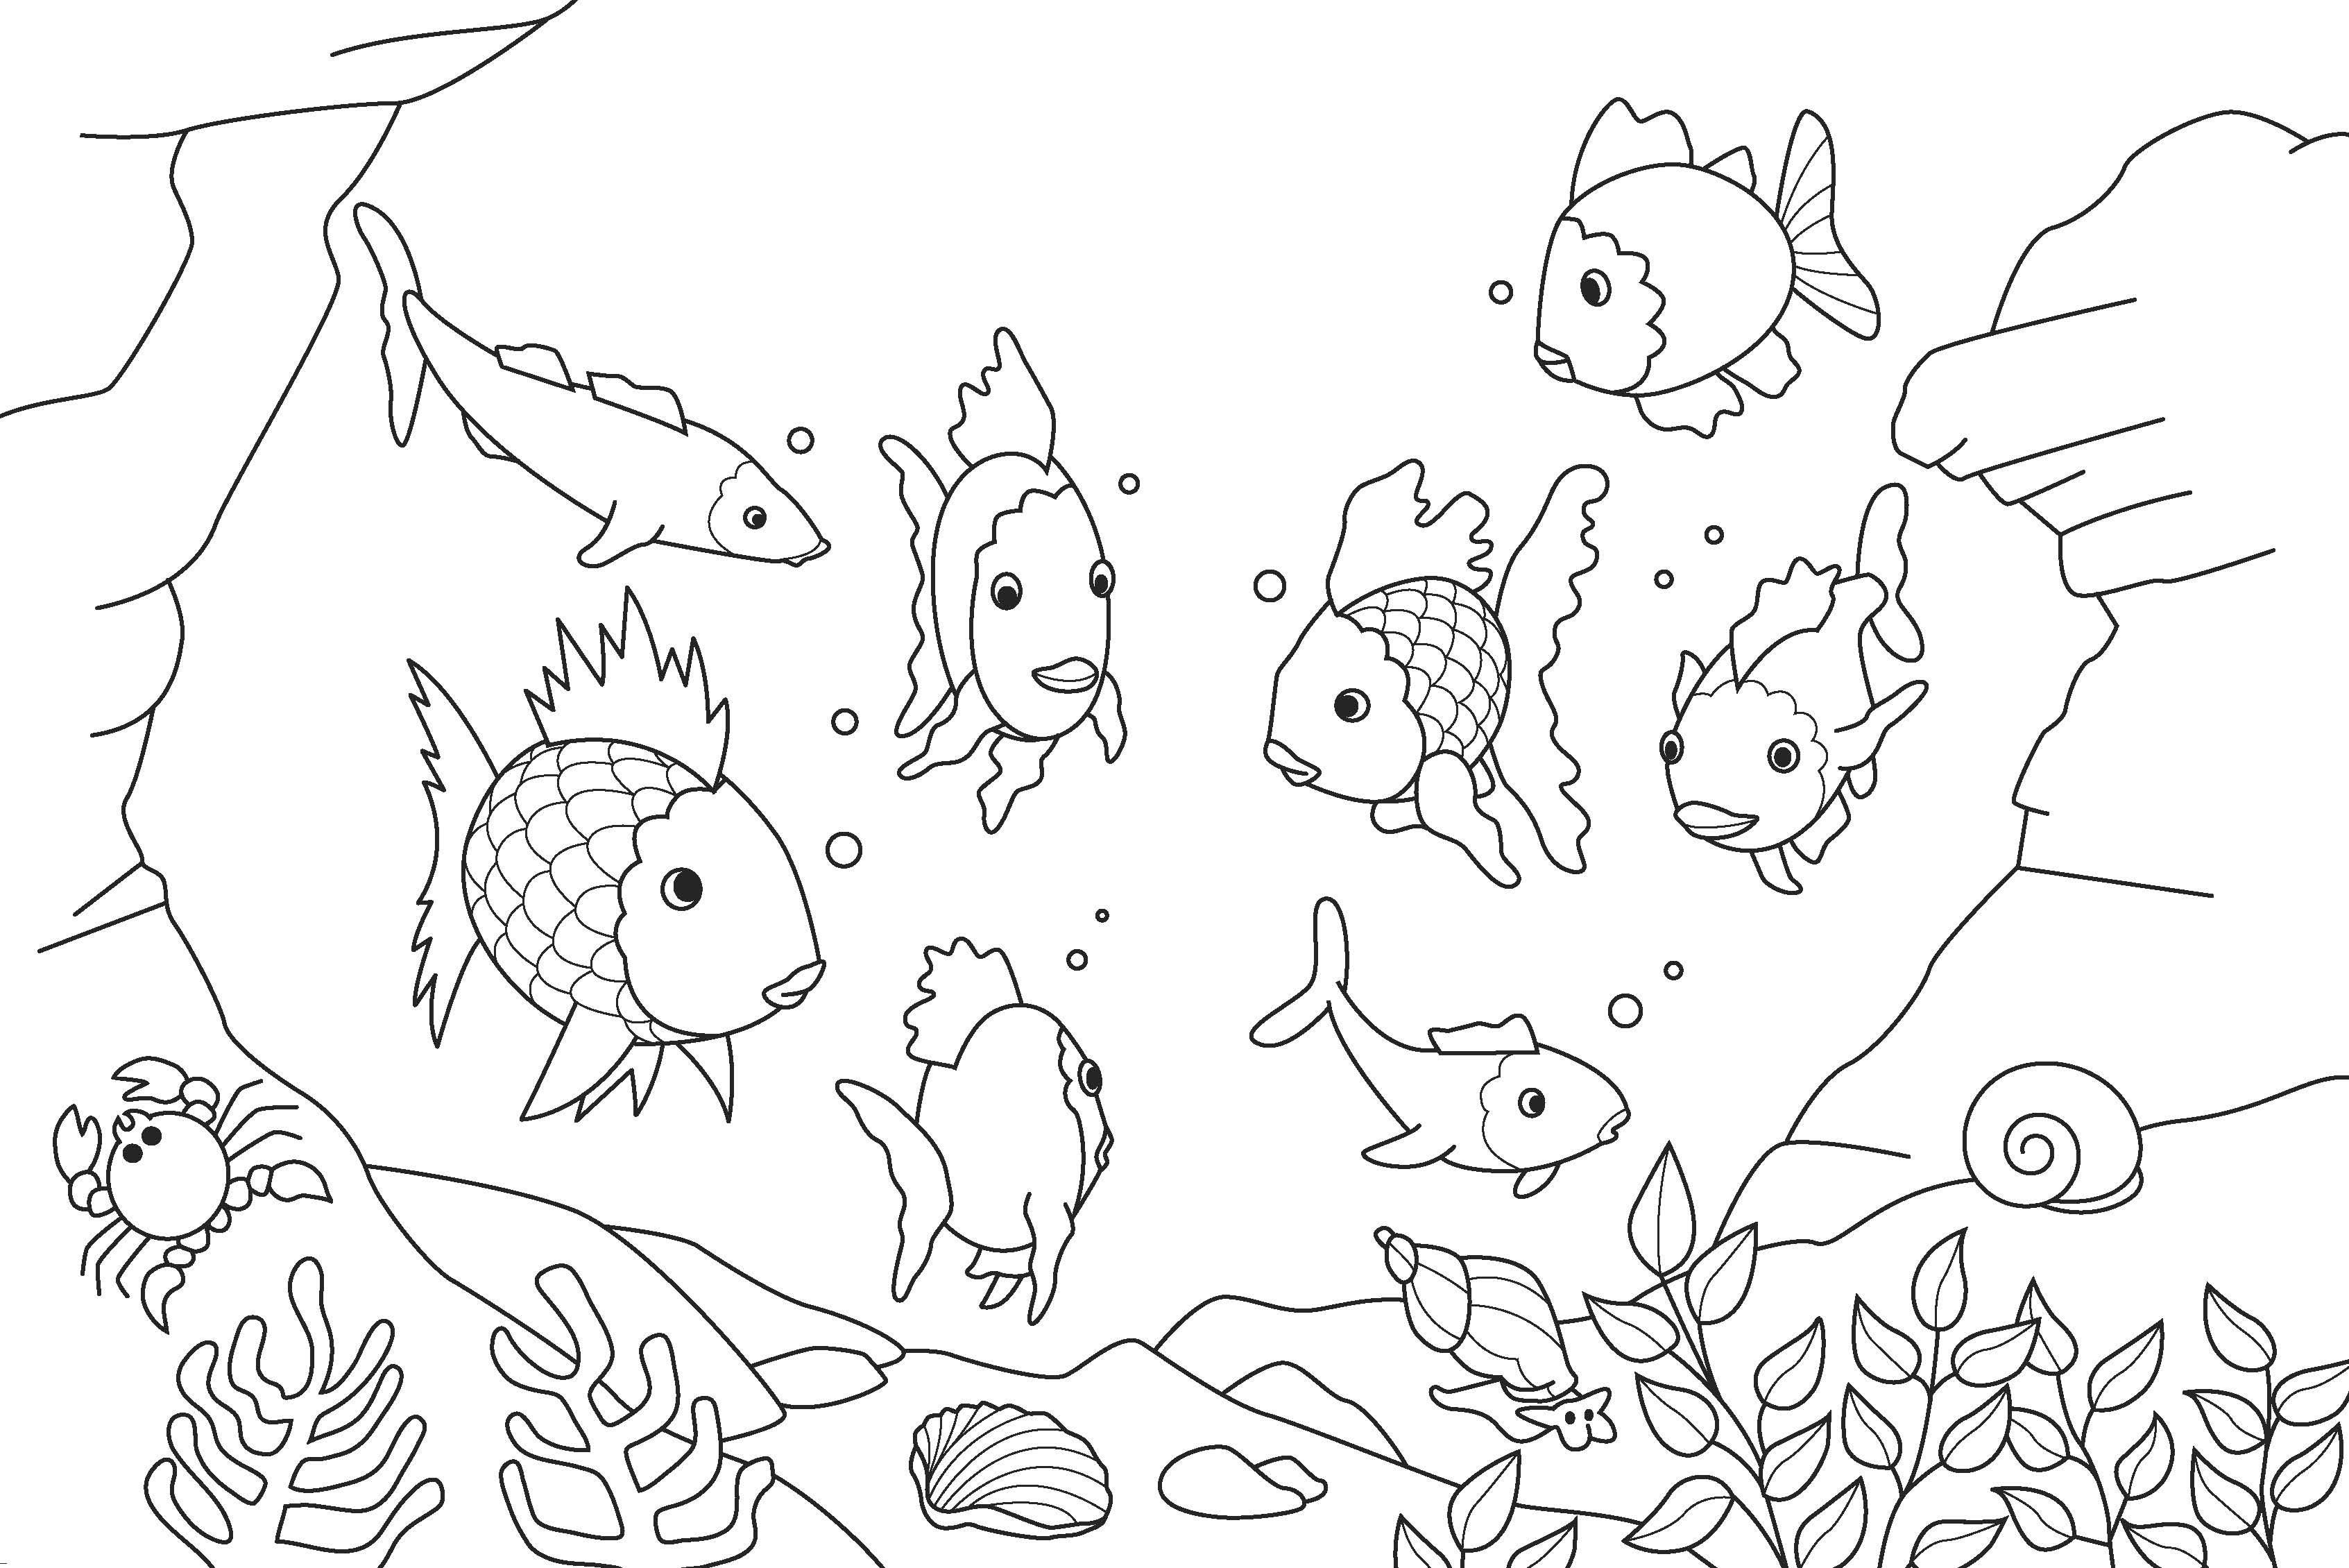 Free coloring pages fish - Fish Coloring Pages Kids